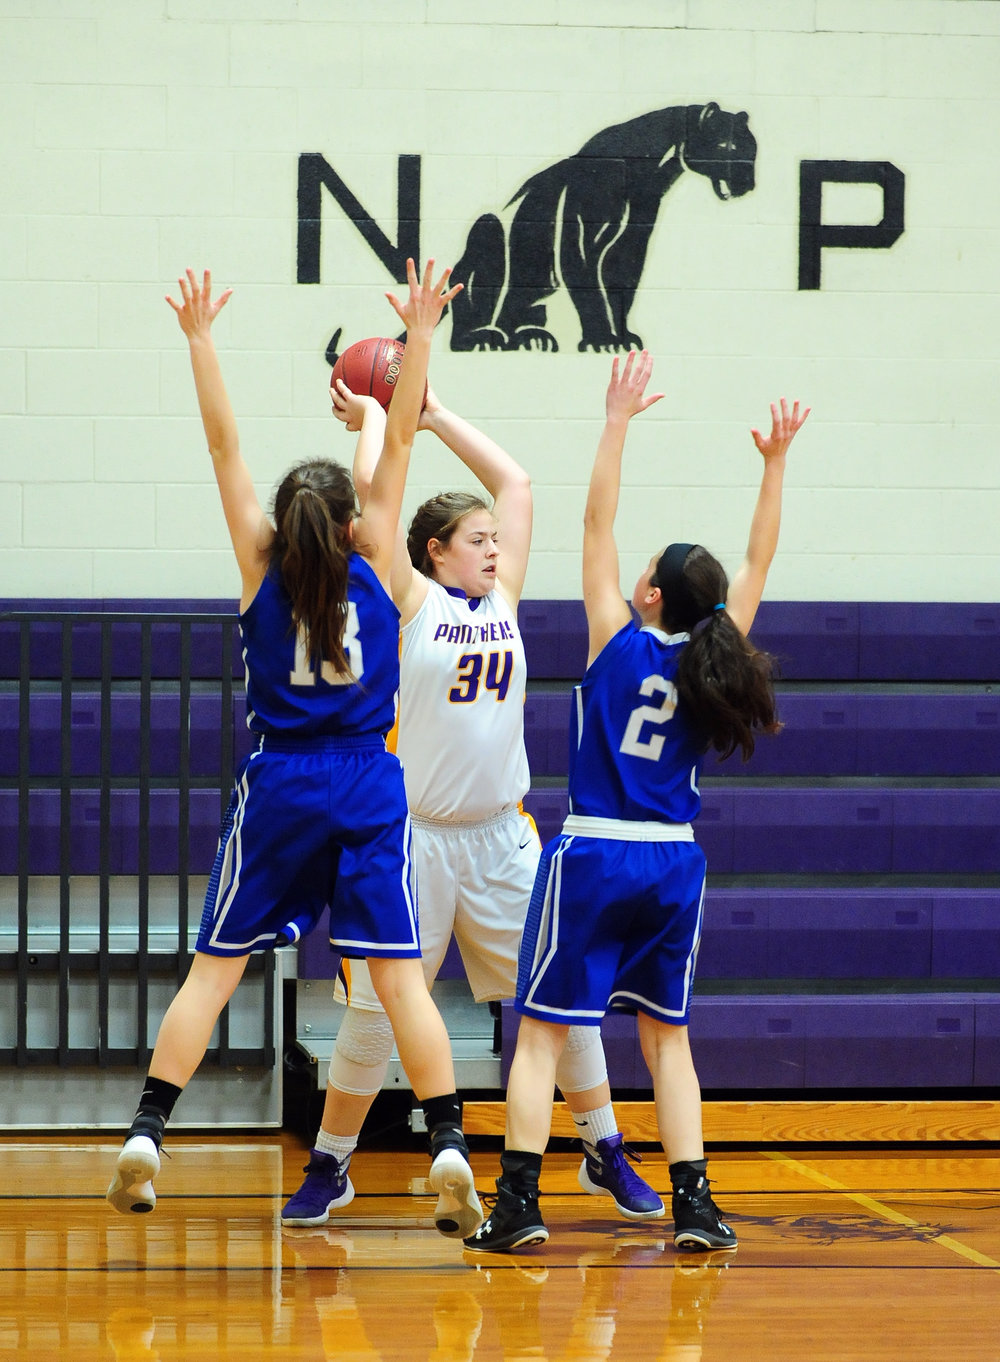 NICK INGRAM/Citizen photo North Platte freshman Jordyn Smith (34) looks to pass between two West Platte defenders Friday, Jan. 27 in the fifth-place game of the North Platte Invitational at North Platte Junior High in Dearborn, Mo.